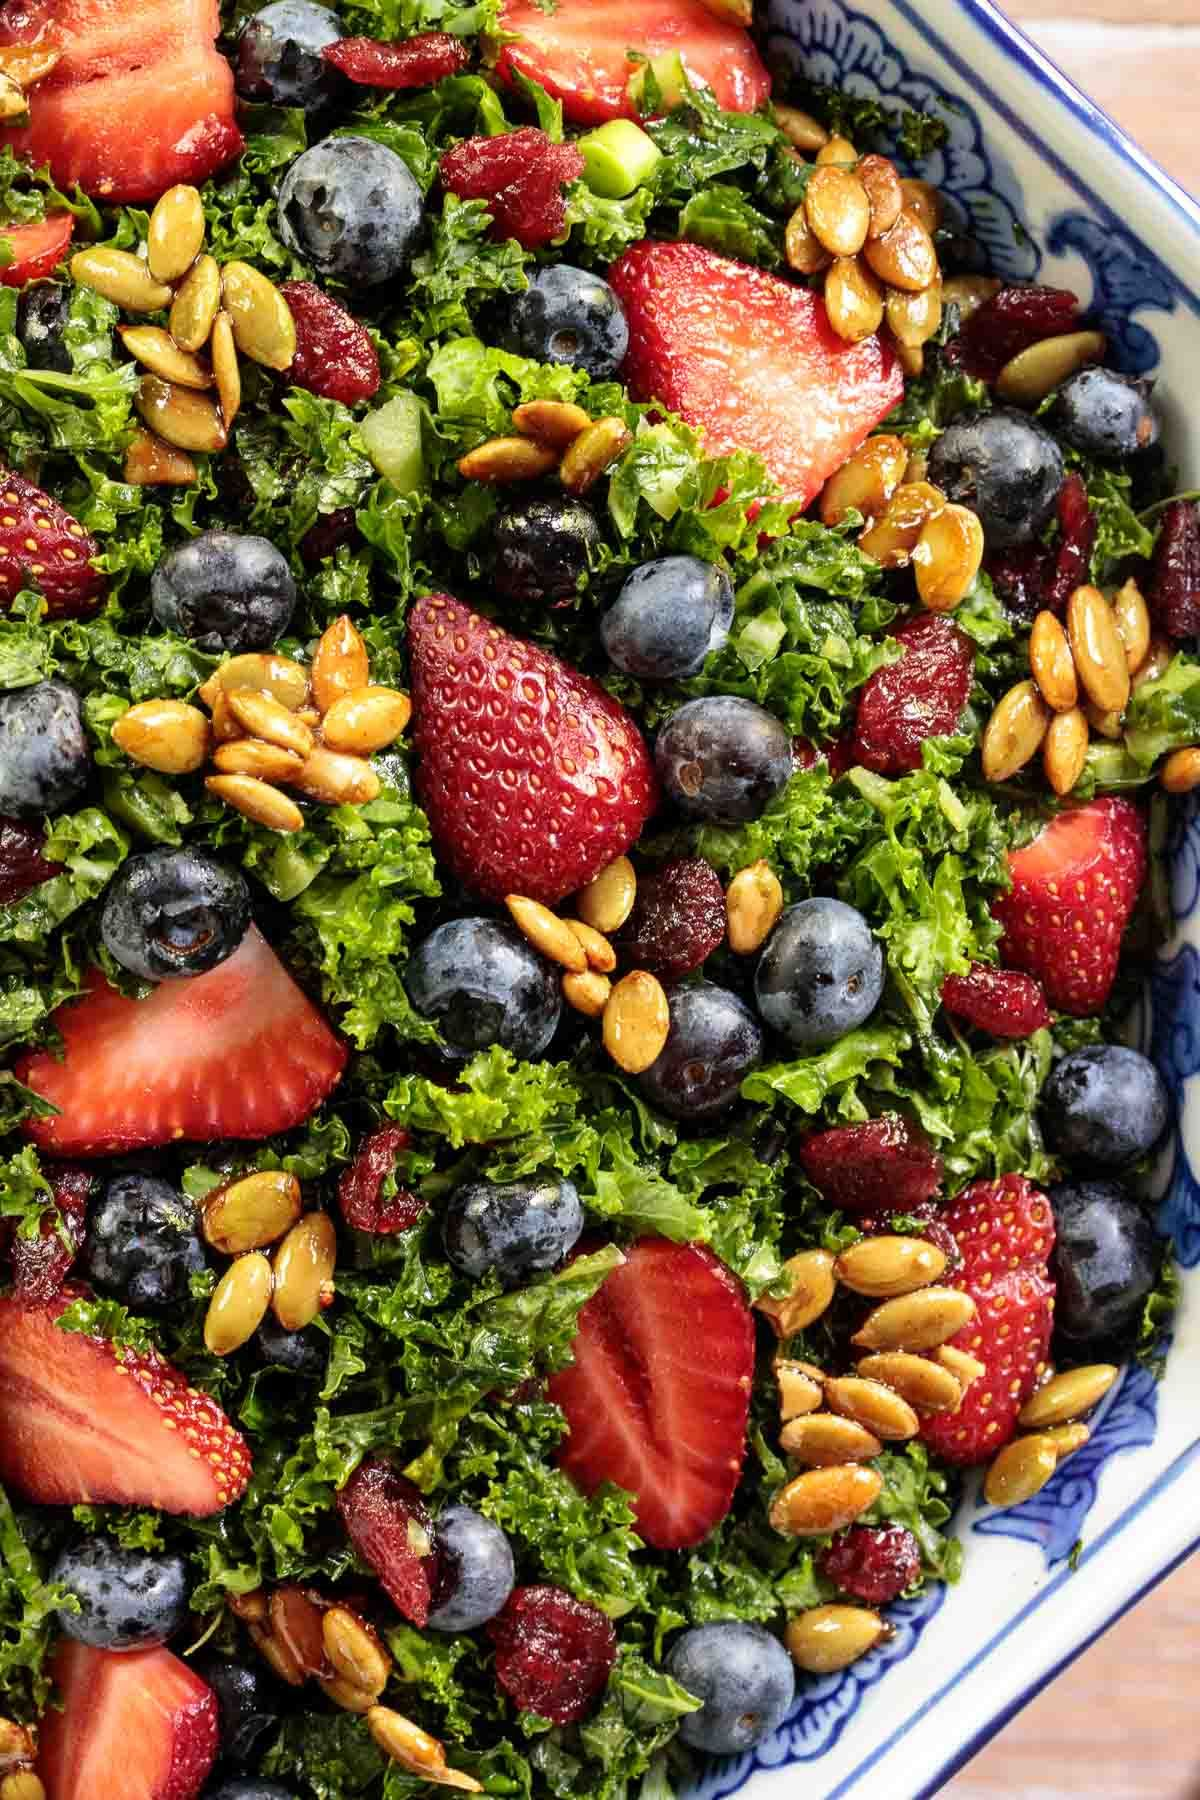 Strawberry Kale Salad with Honey Lemon Dressing